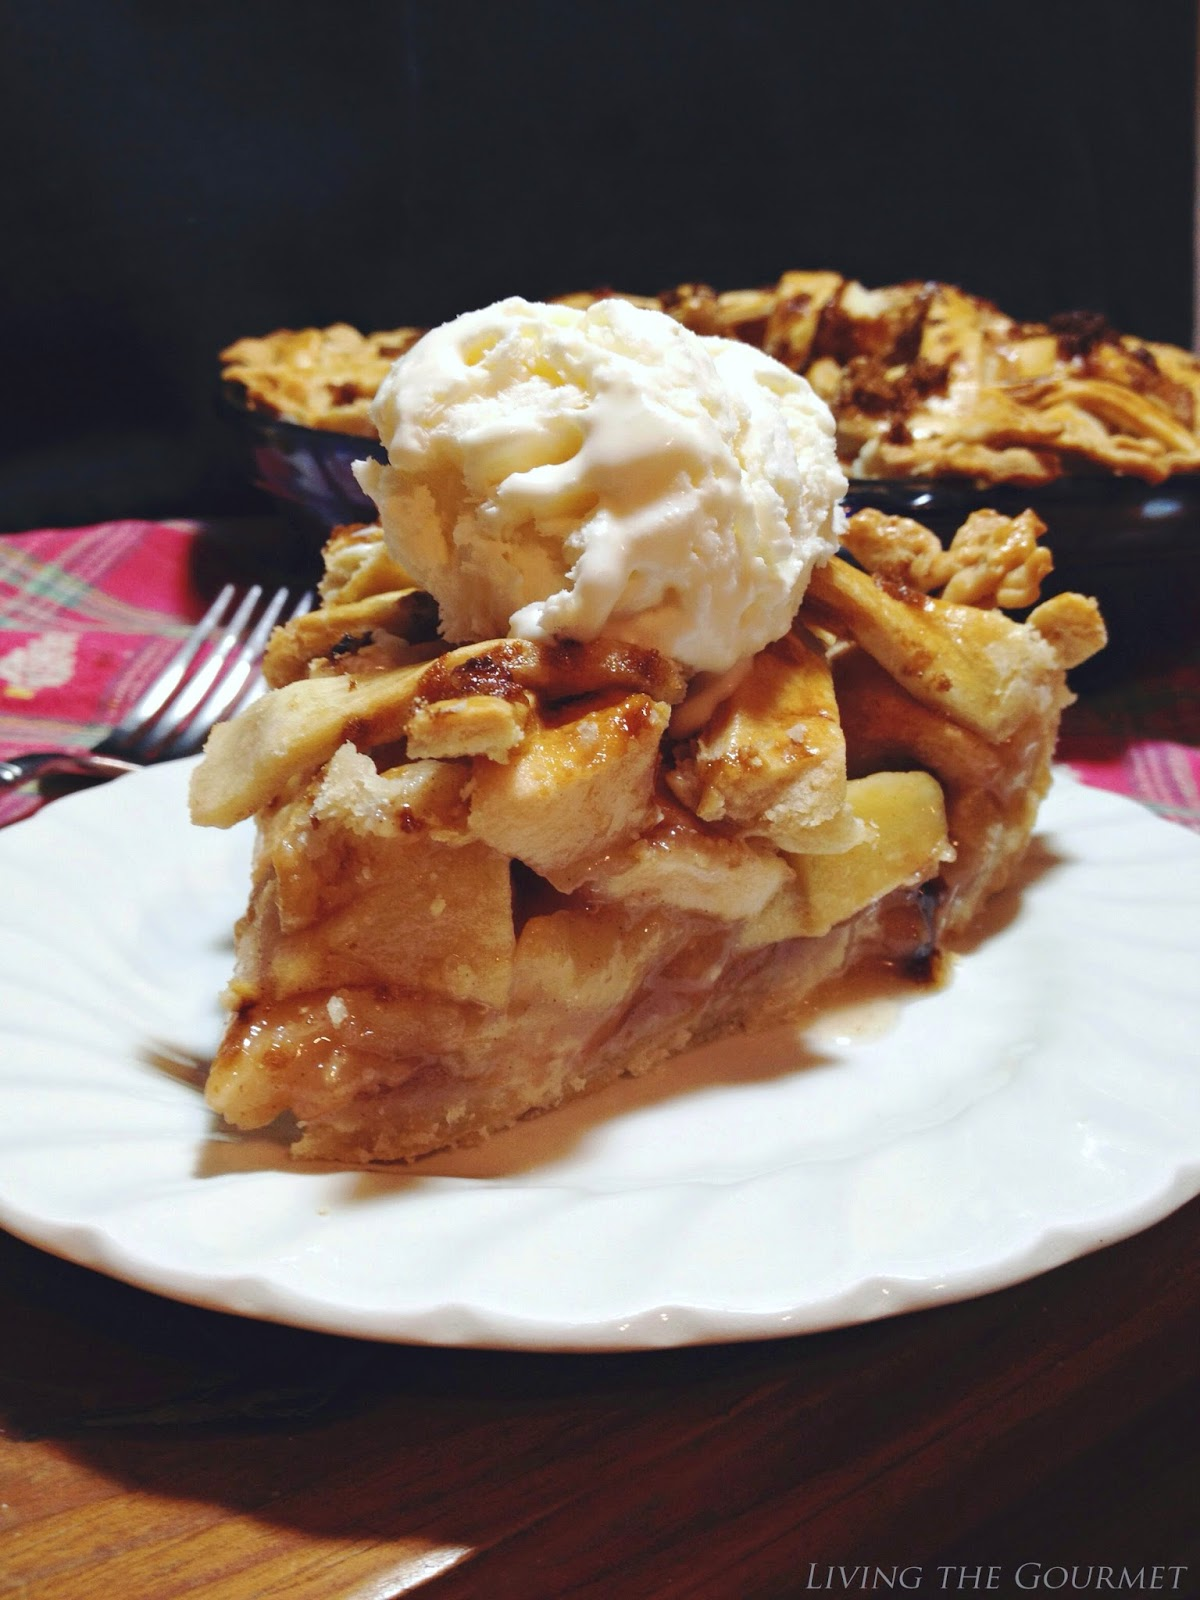 http://livingthegourmet.com/2014/12/apple-brandy-pie.html